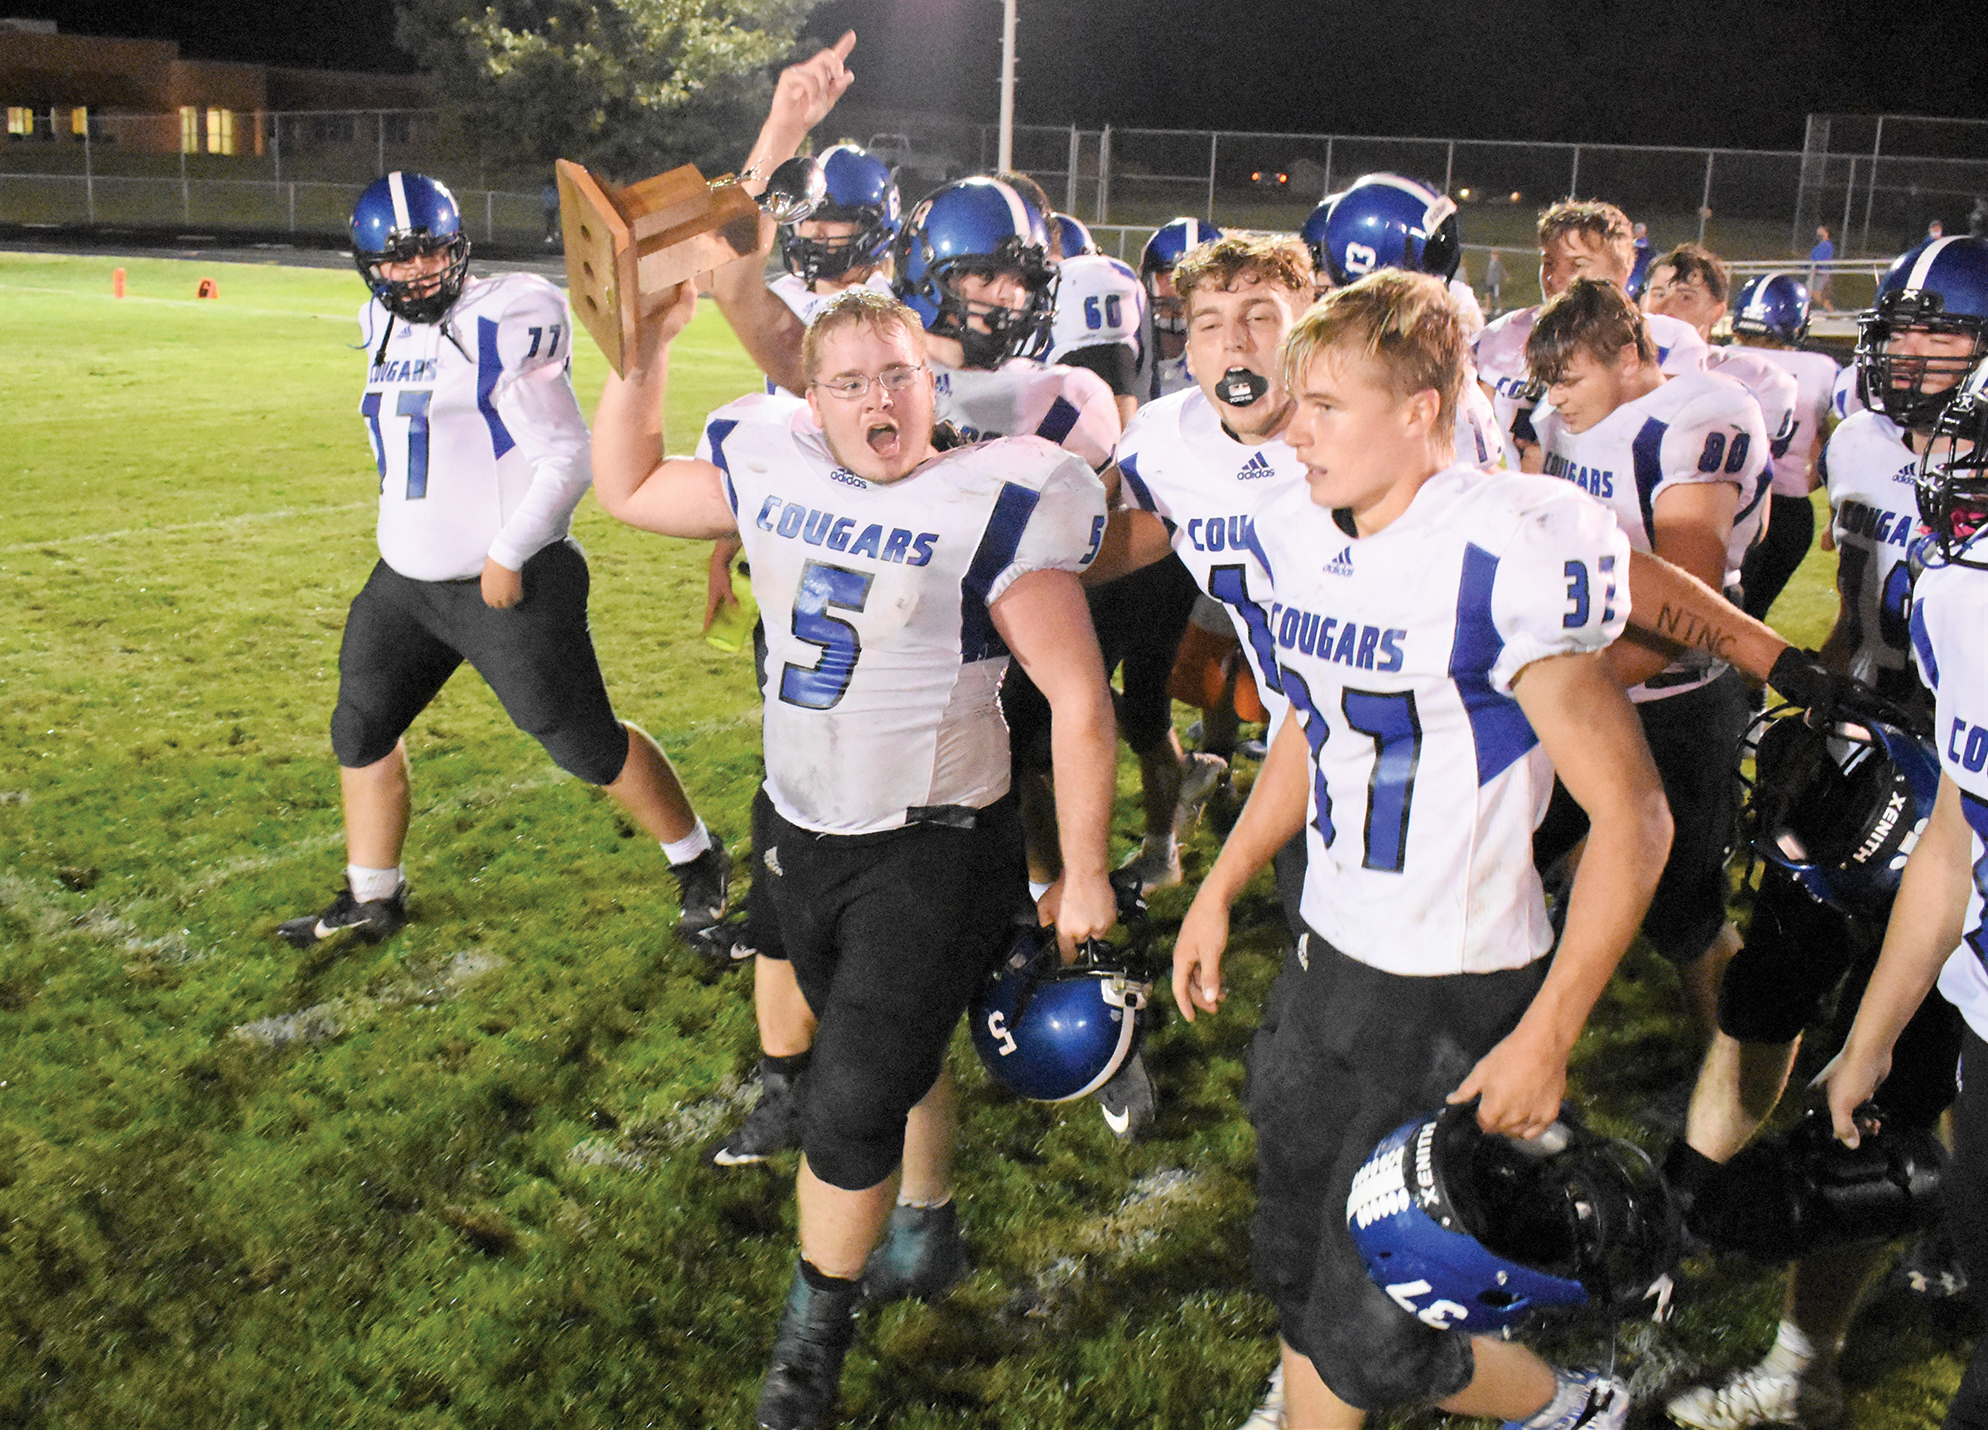 Another OT Classic: Cougars 26, Panthers 20